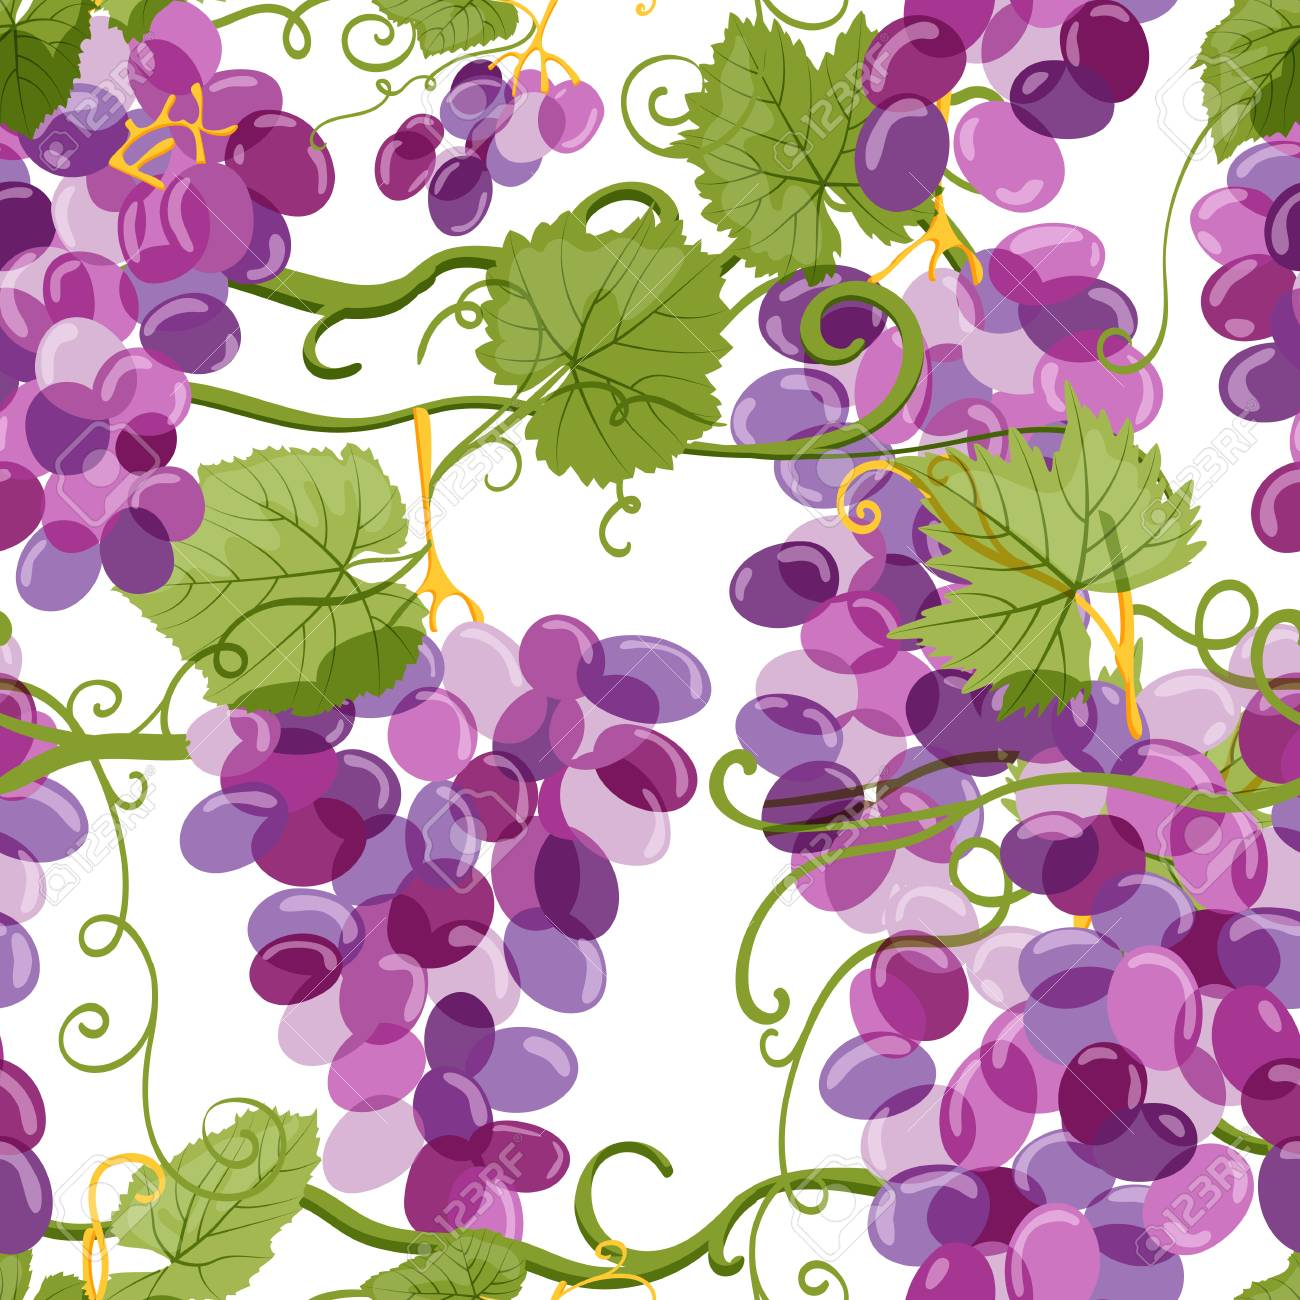 Vector grapes seamless pattern. Vineyard hand drawn illustration on white background. Fresh hand drawn grape with green leaves. Design elements for wine label or packaging. - 95631402